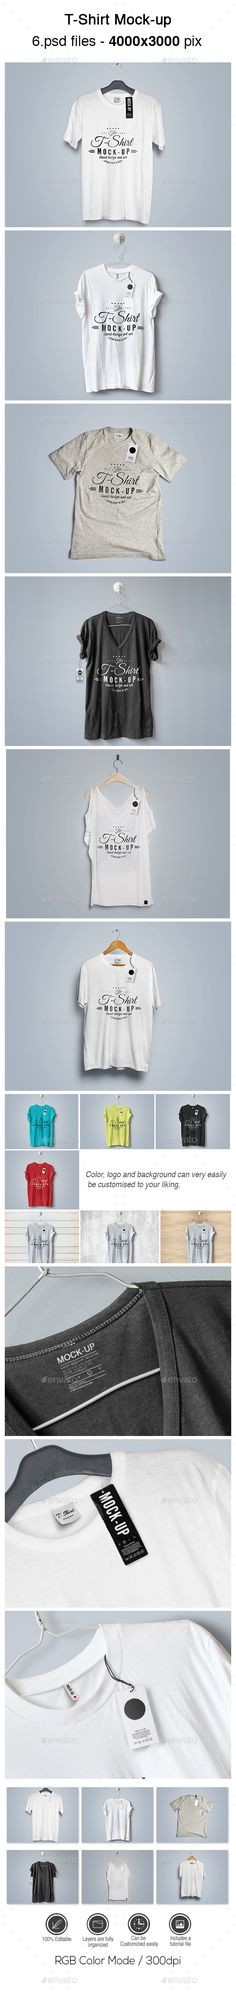 T-Shirt Mock-up #design Download: http://graphicriver.net/item/tshirt-mockup/13825761?ref=ksioks